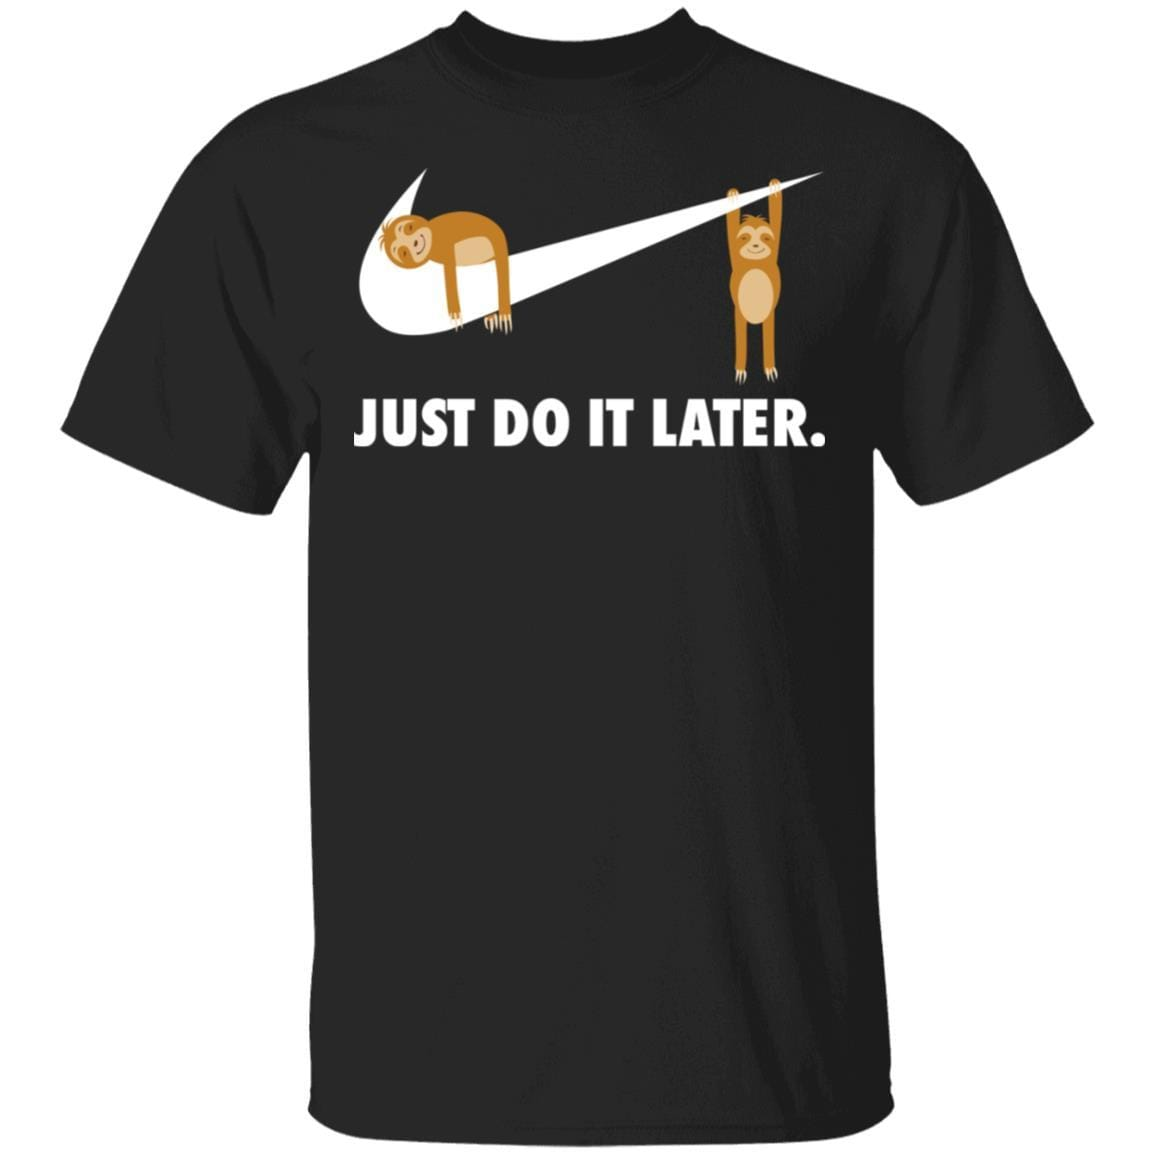 Sloth Just Do It Later T-Shirts, Hoodies 1049-9953-86854338-48144 - Tee Ript